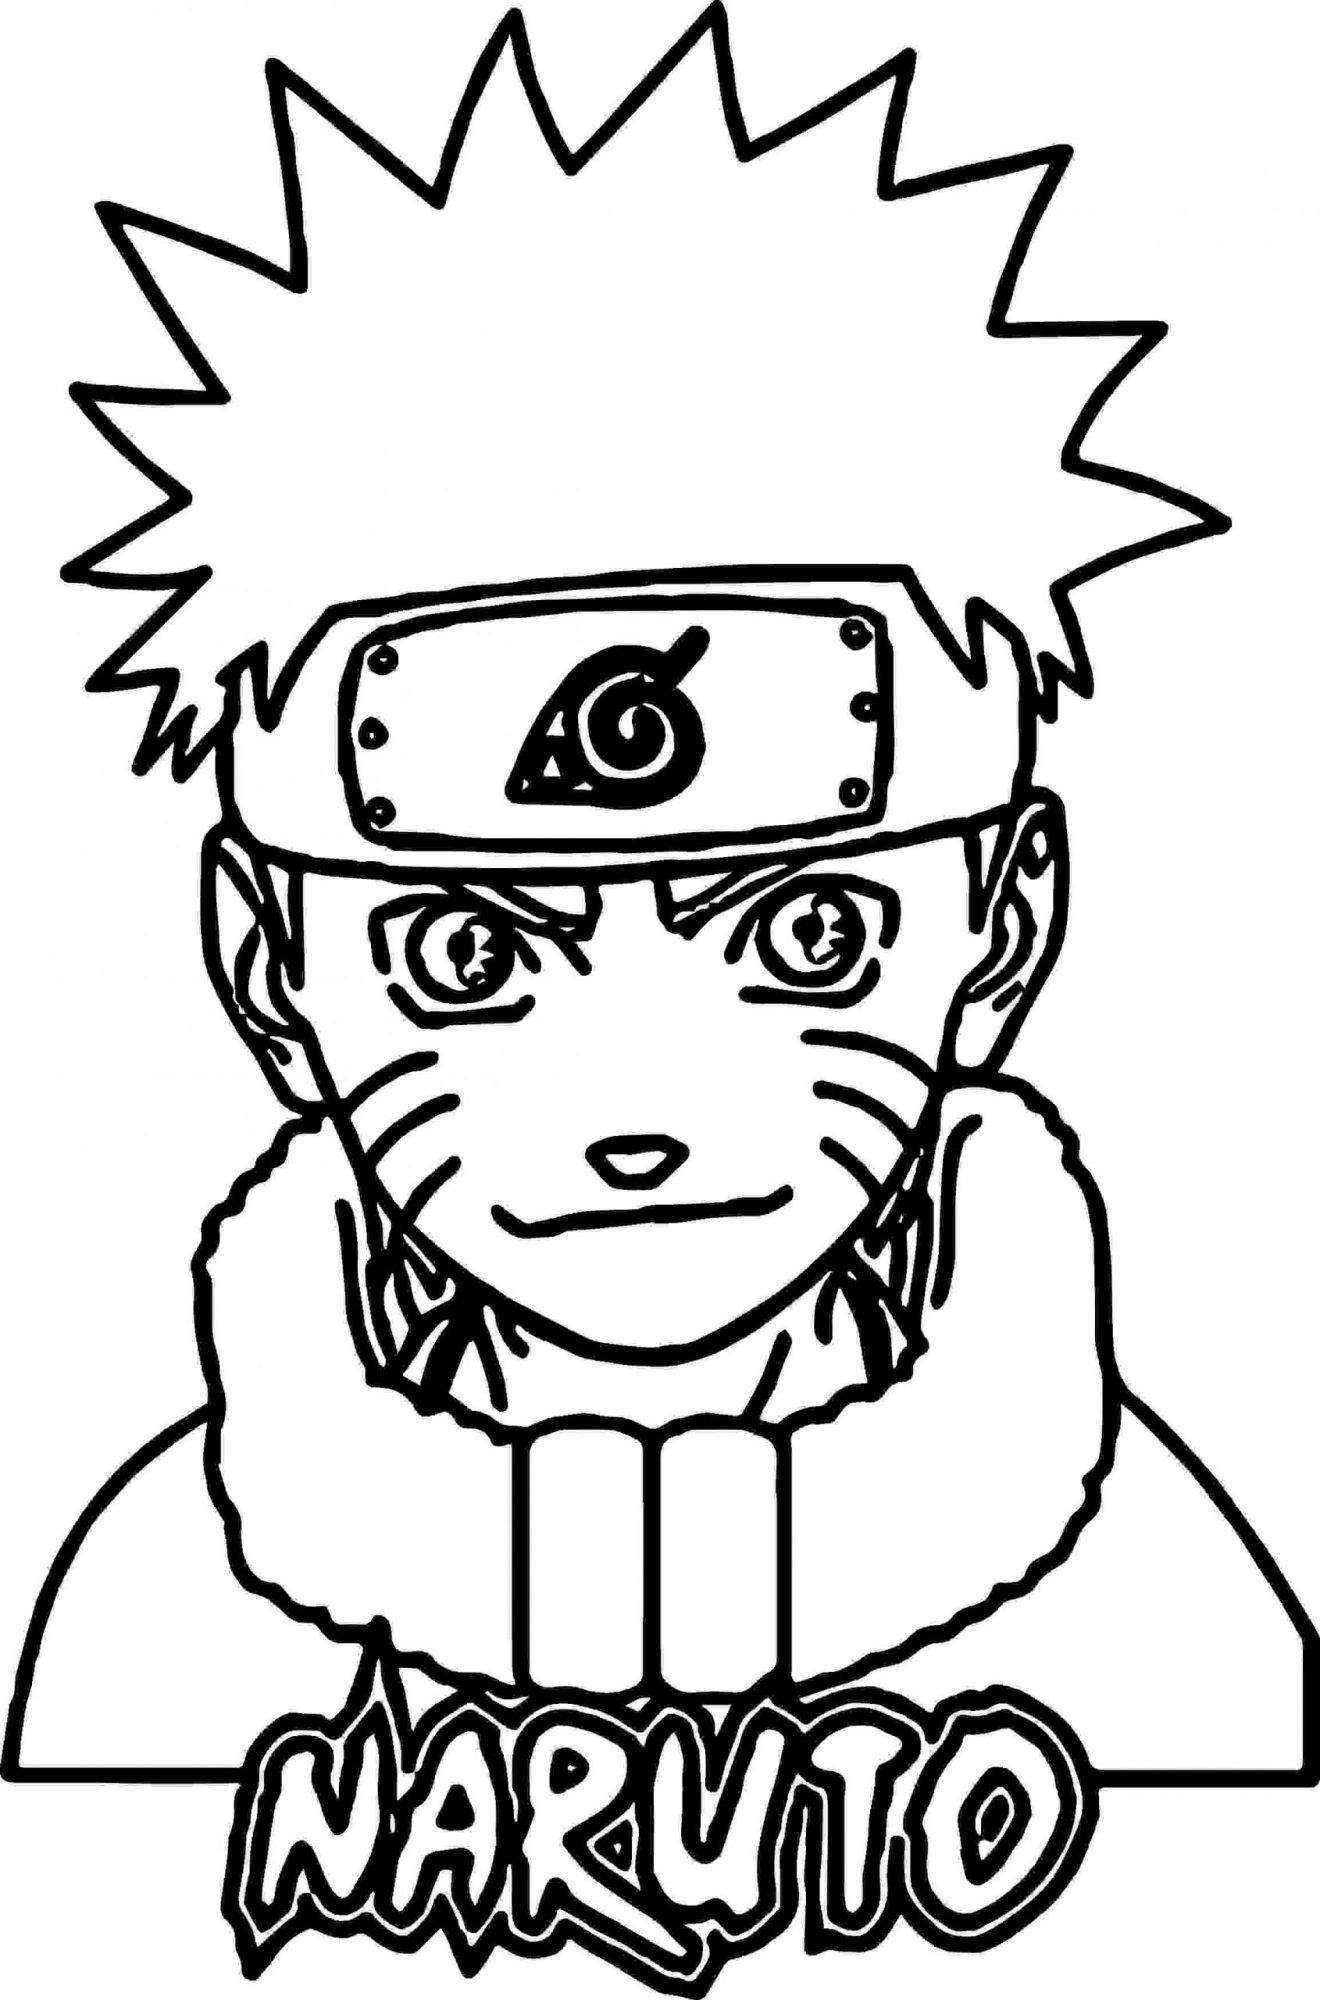 Naruto in childhood Coloring Page